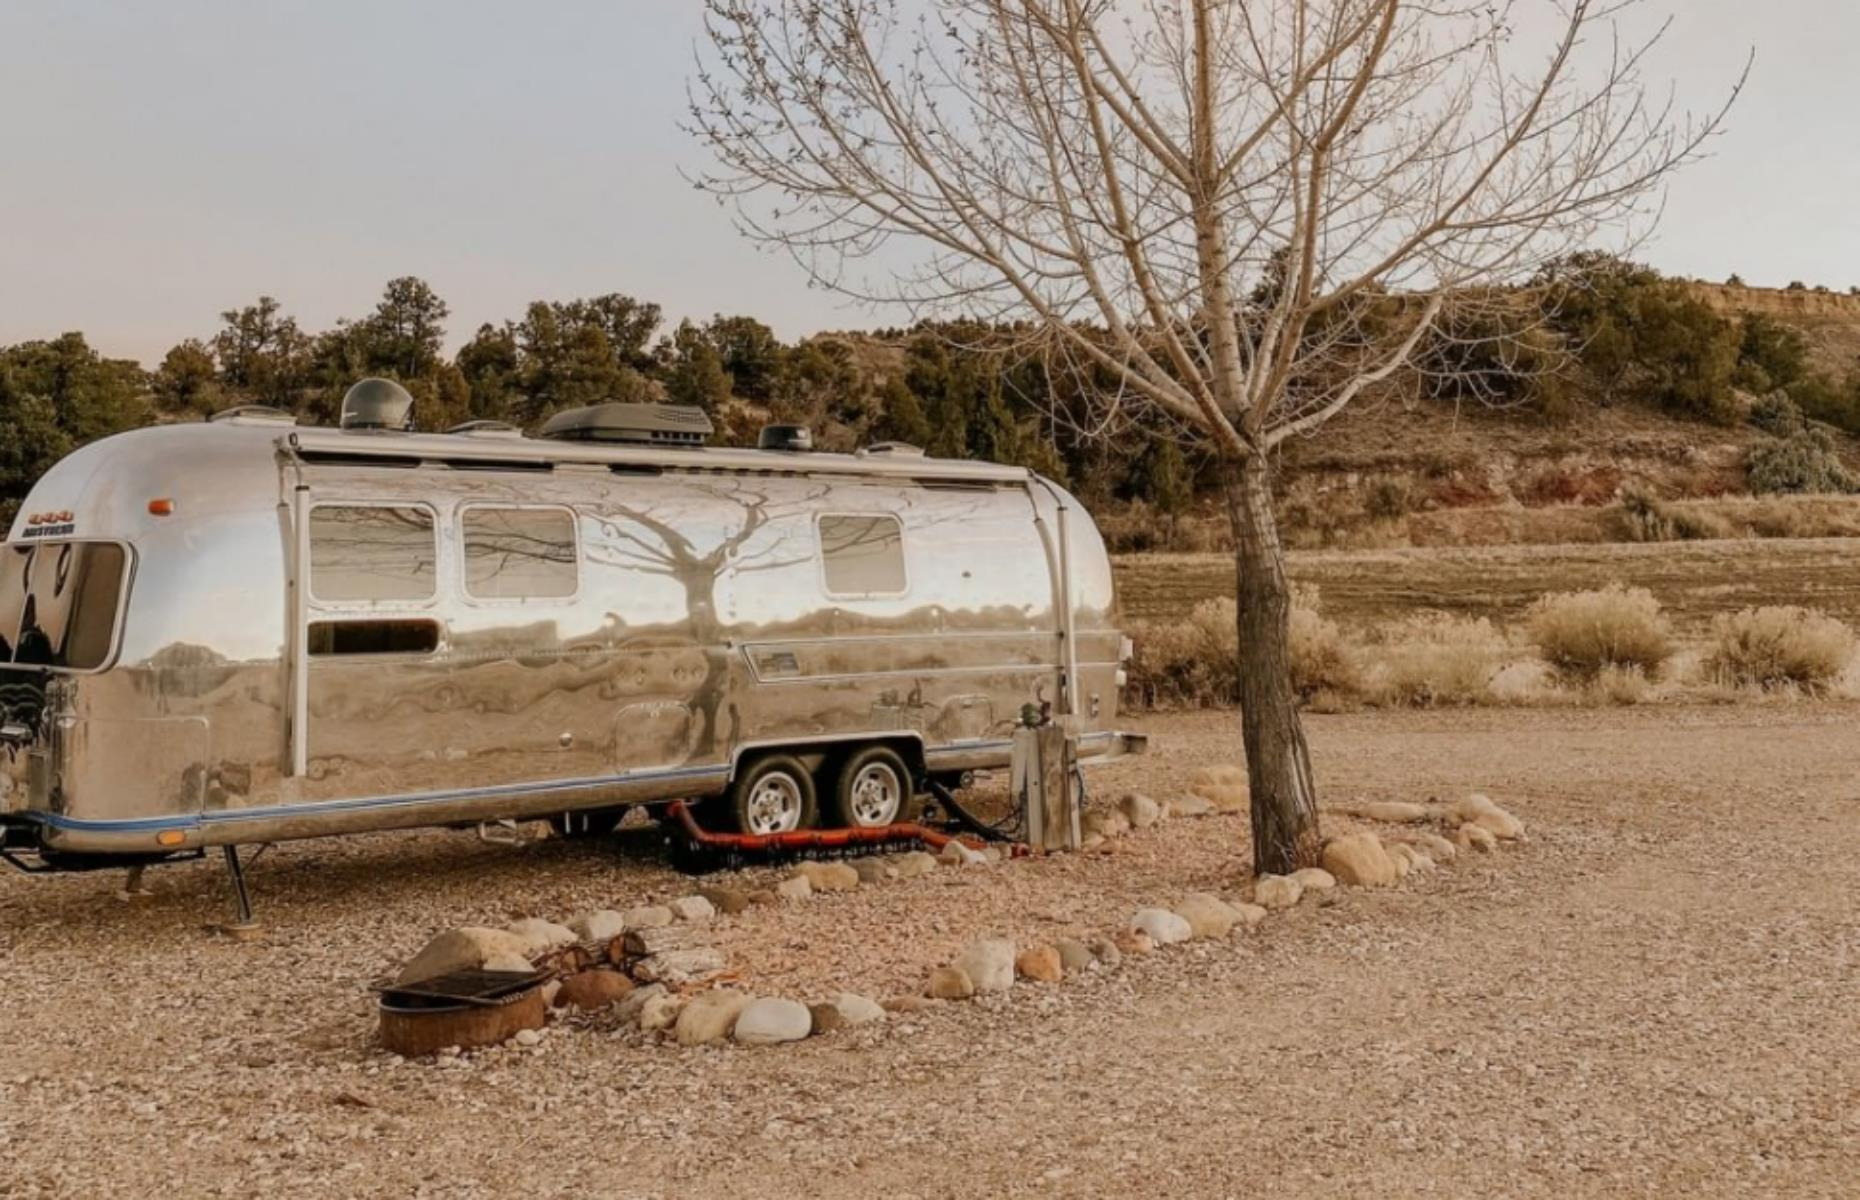 Slide 46 of 52: Locations don't come much more inspiring than that occupied by Yonder Escalante, launched in fall 2020. The chic and cozy Airstream trailers and cabins are dotted around the site of an old drive-in movie theater, within Grand Staircase-Escalante National Monument and close to Bryce Canyon National Park. Lovely touches such as outdoor showers, a nightly bonfire with s'mores and outdoor film screenings really make the most of the incredible surroundings. See the official website for information on the resort's COVID-19 measures, including enhanced cleaning and flexible booking.